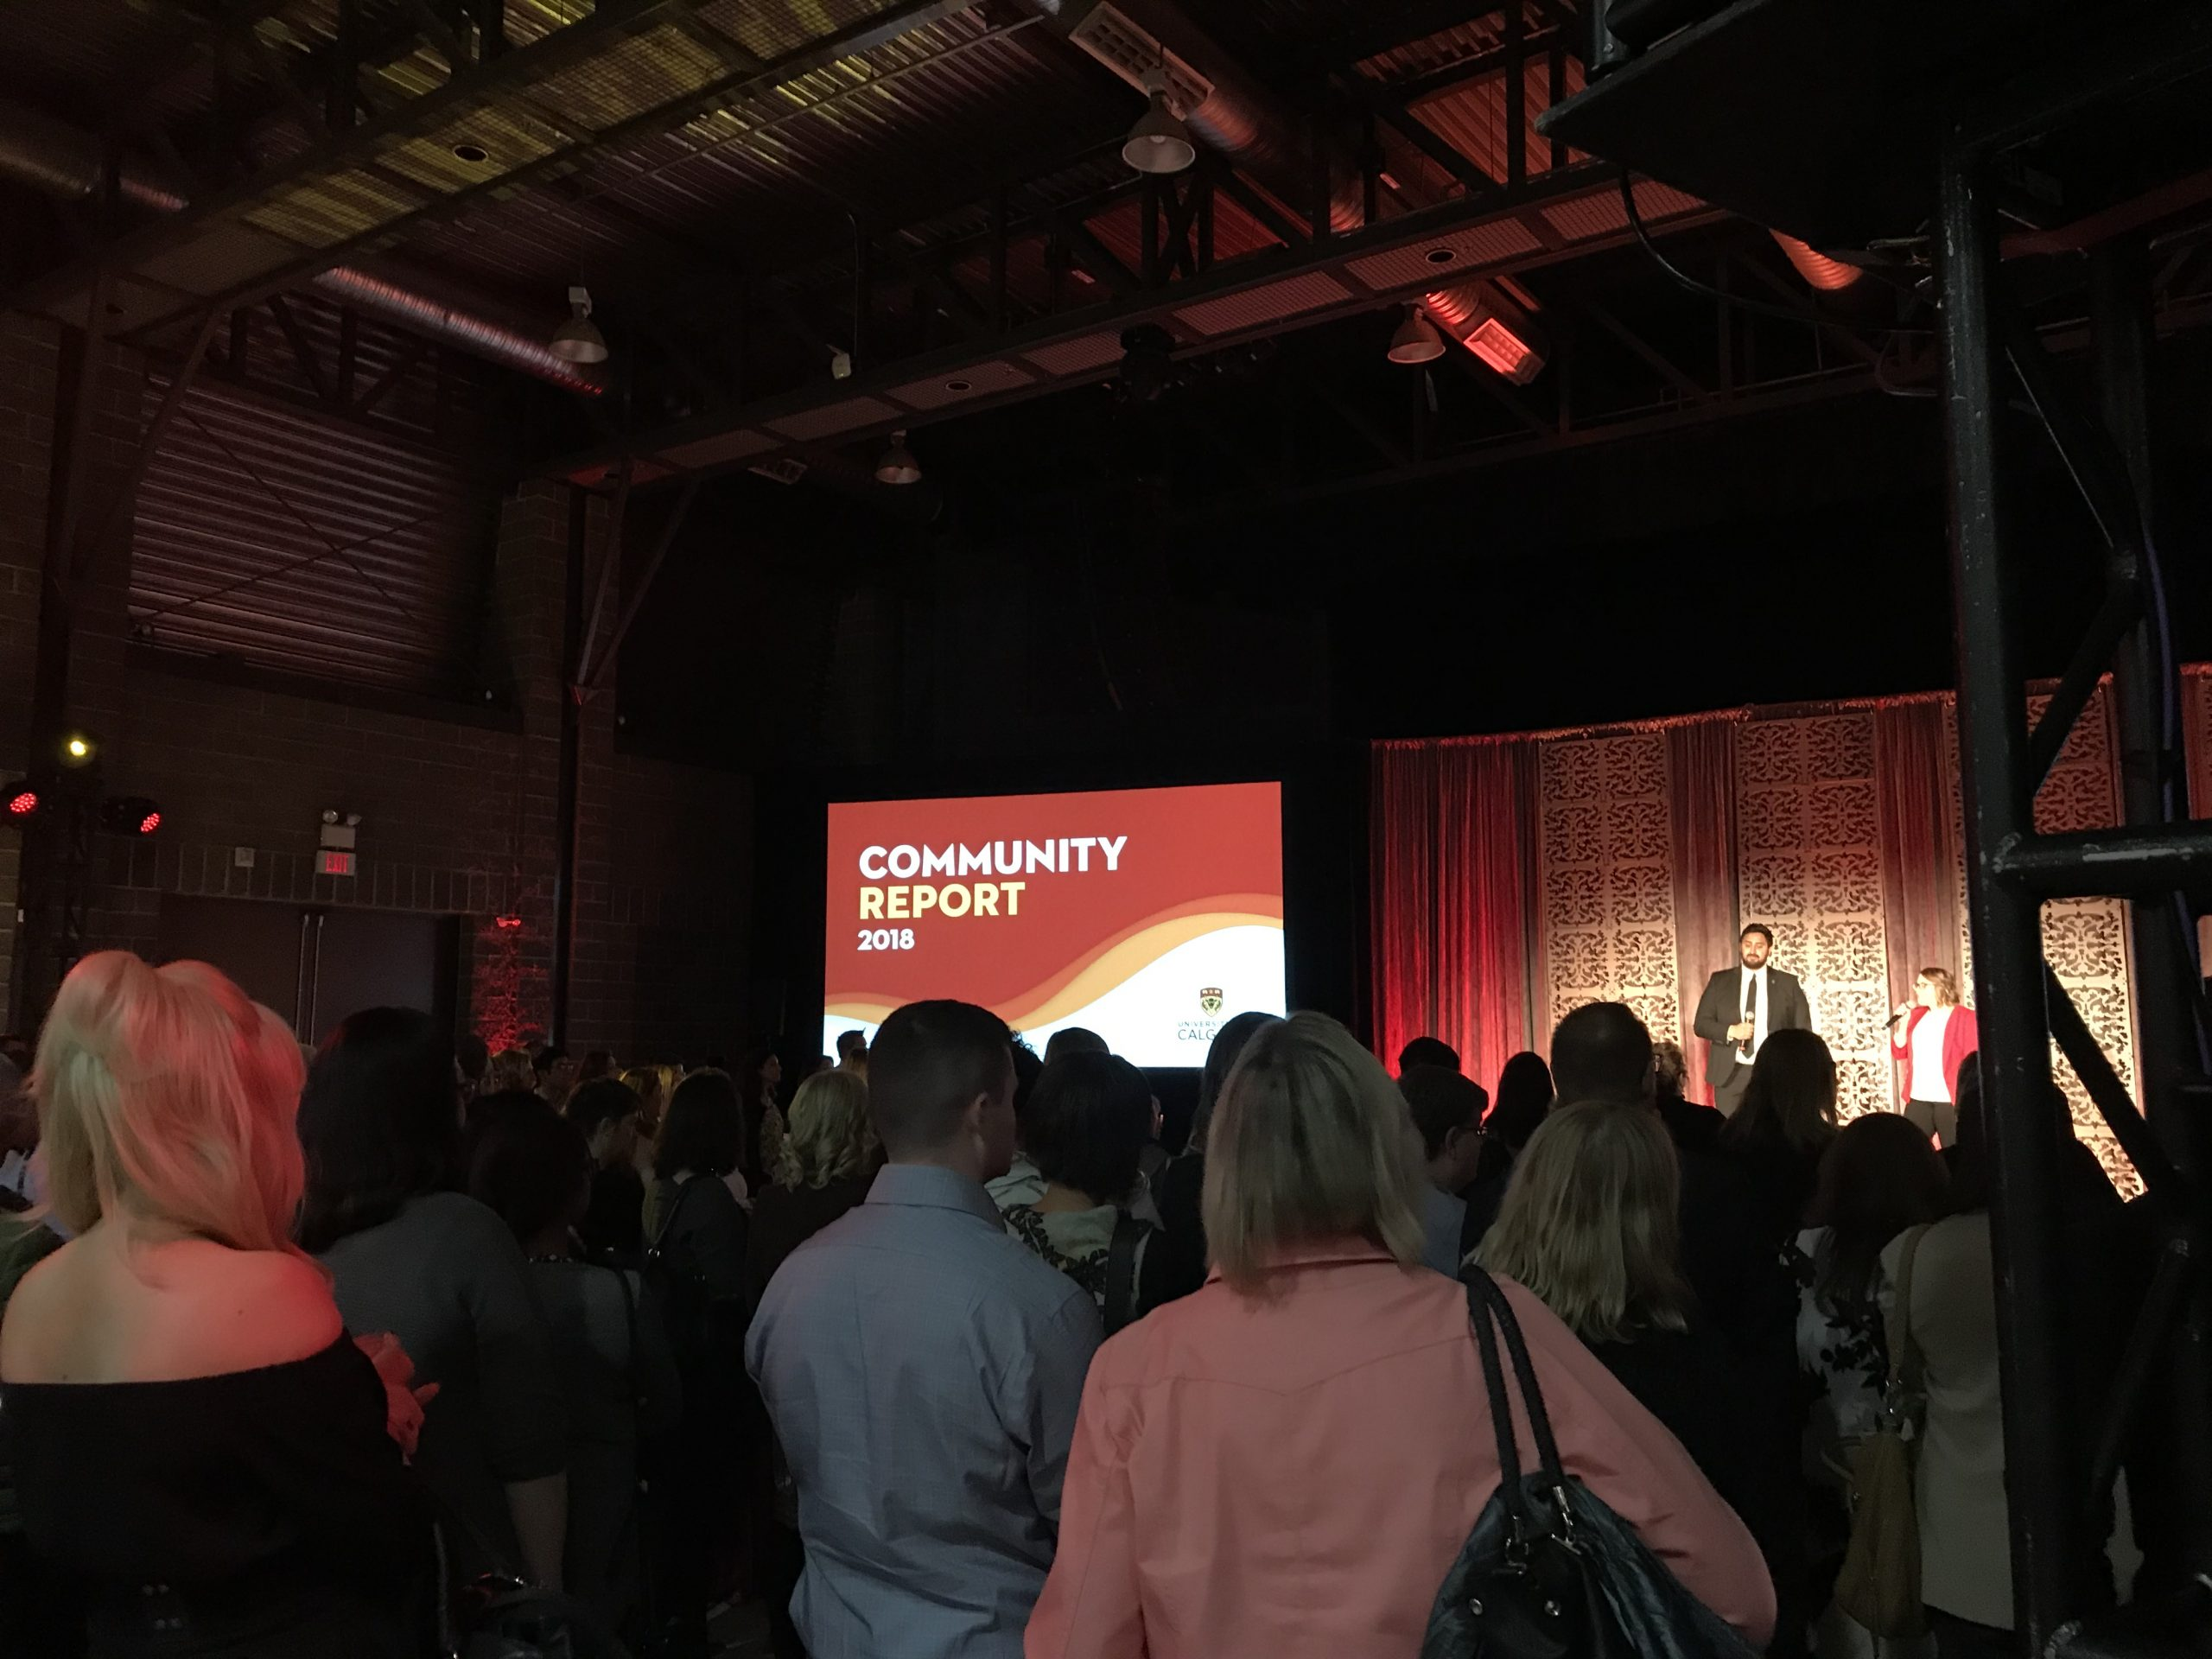 Cannon highlights output at final community report